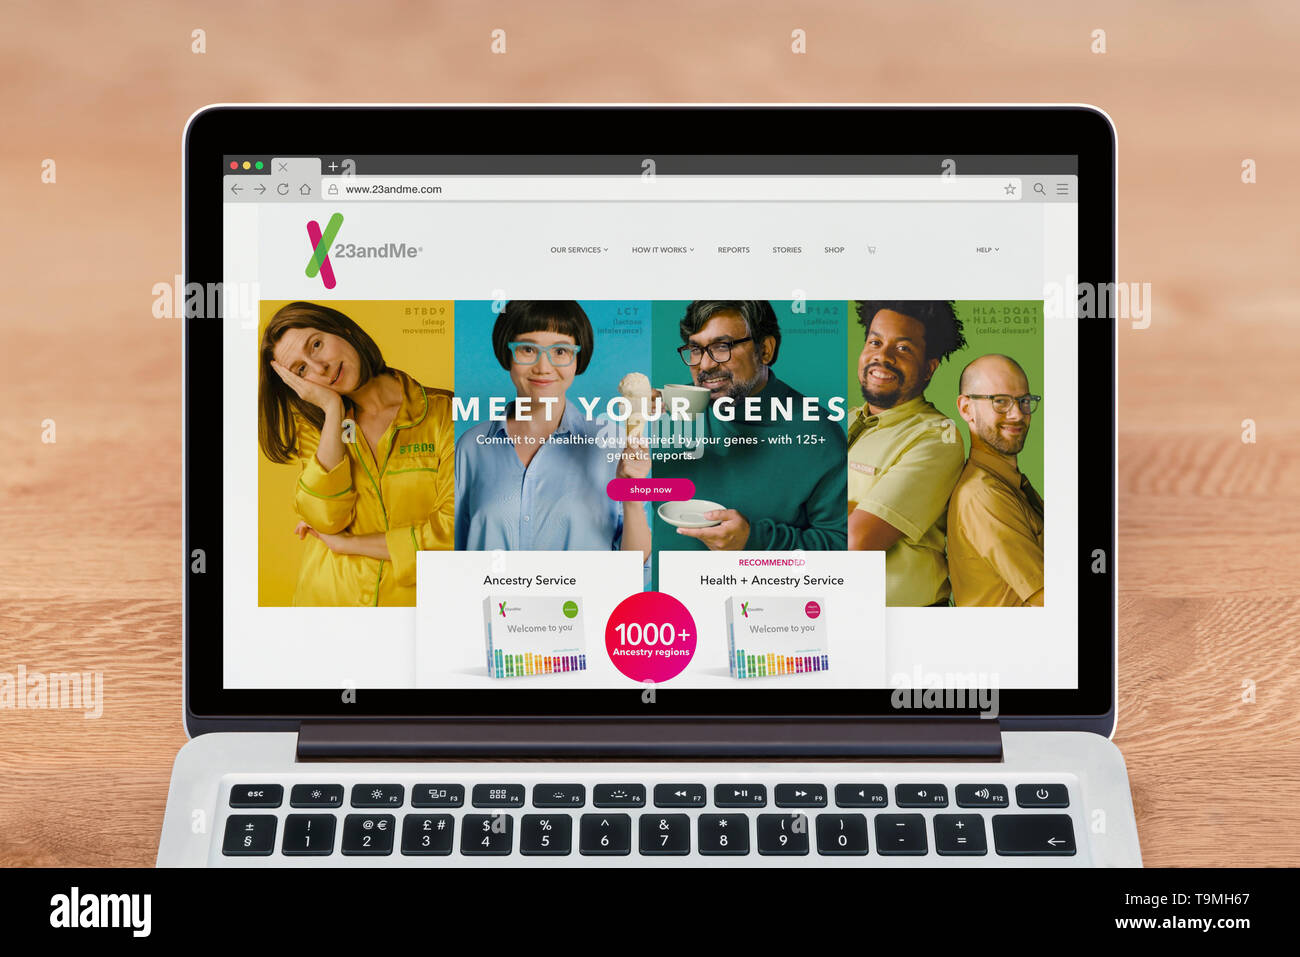 An Apple Macbook displays the 23andme website (Editorial use only). - Stock Image